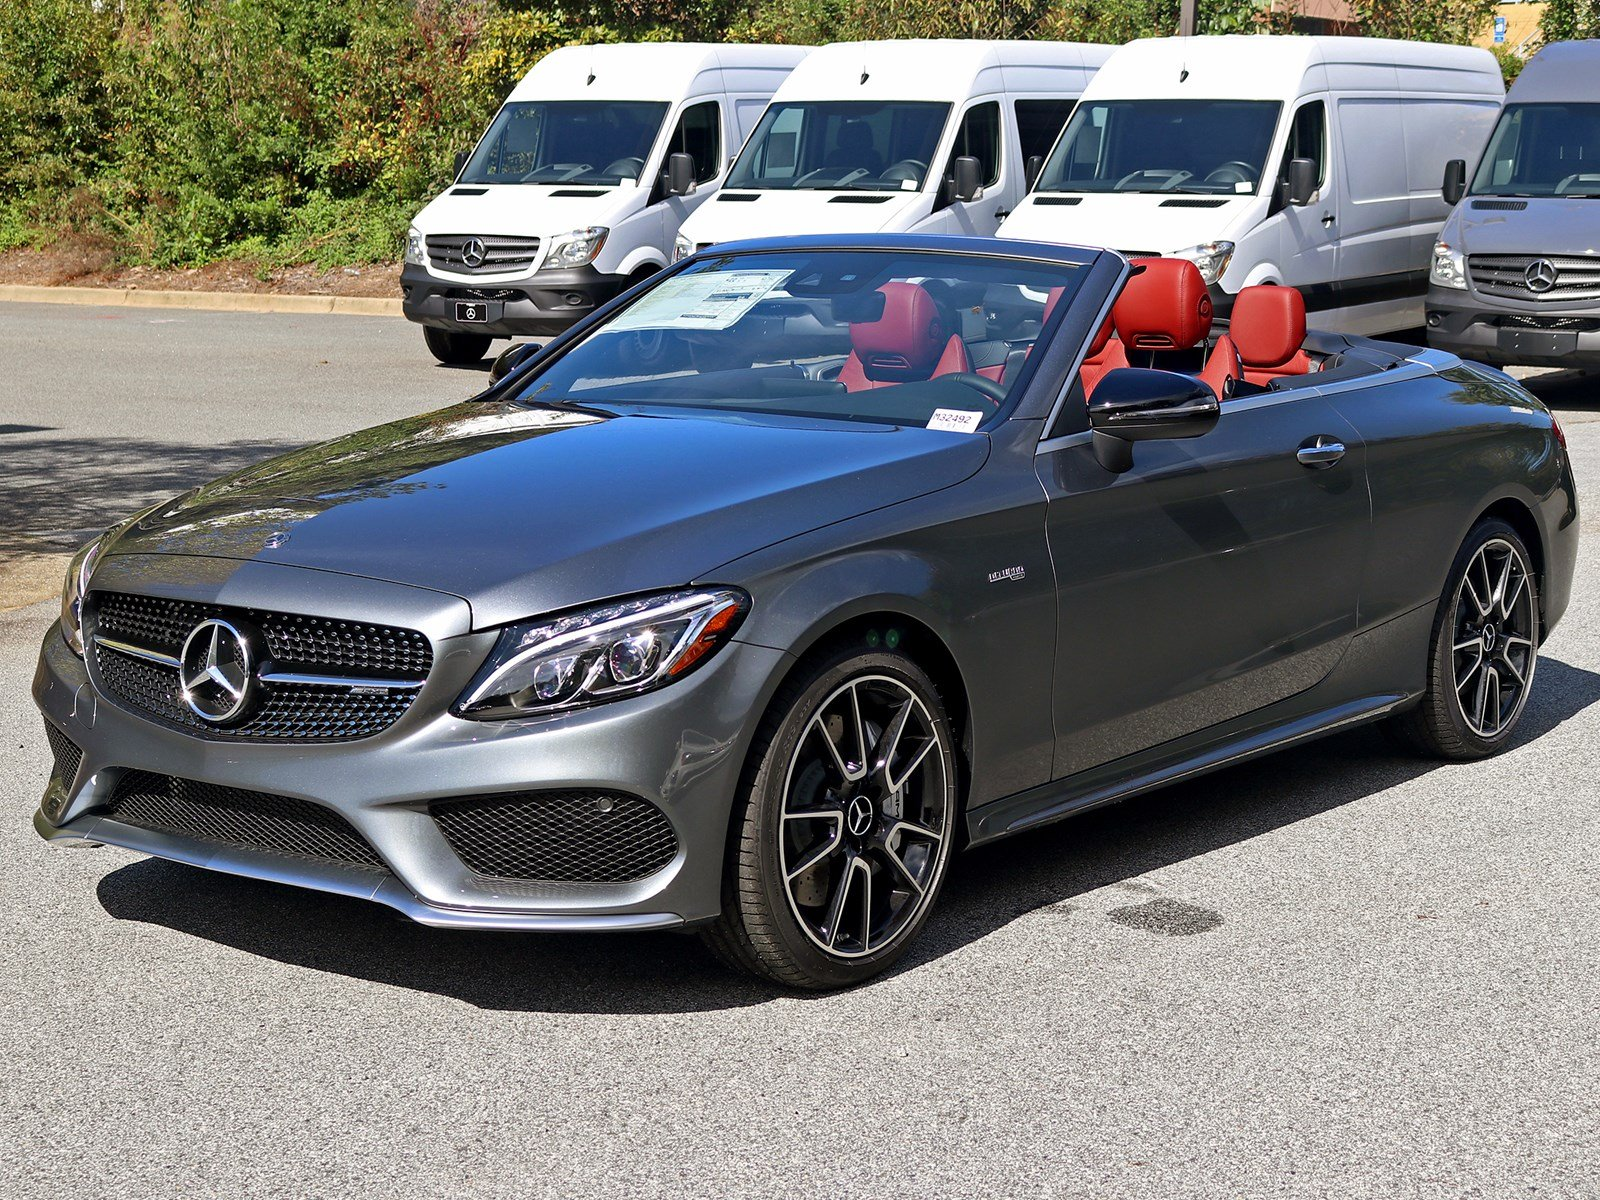 New 2018 Mercedes Benz C Class AMG C 43 Cabriolet CABRIOLET in